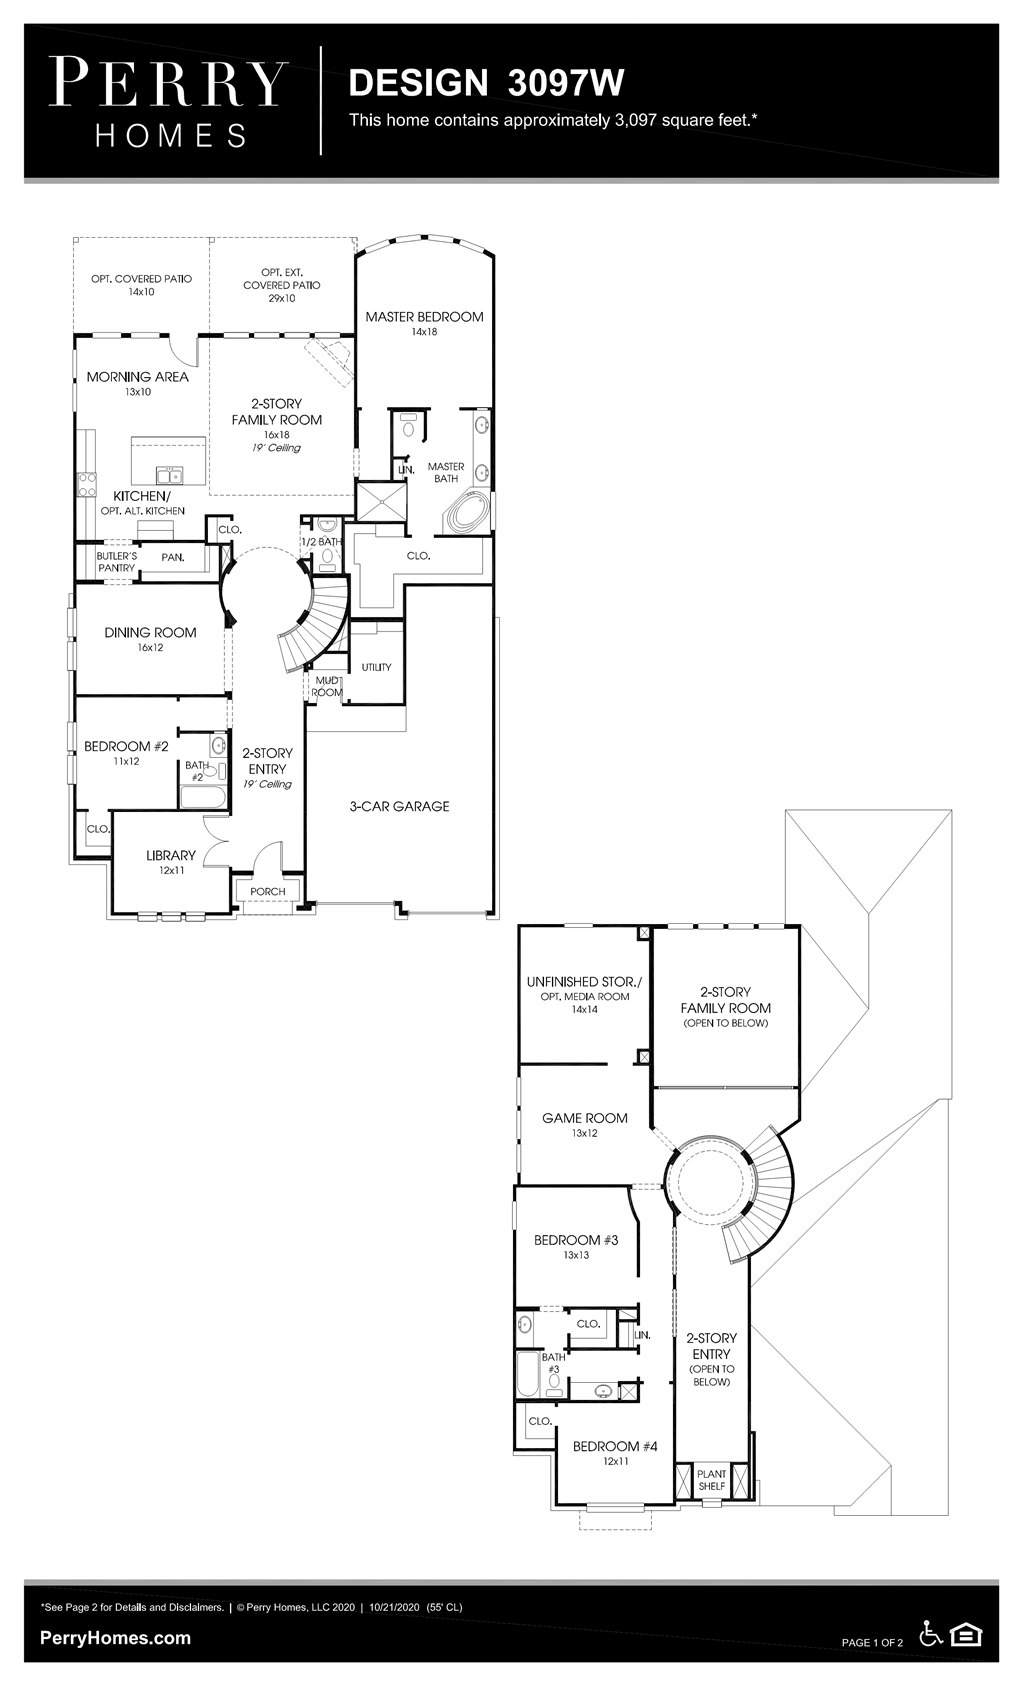 Floor Plan for 3097W